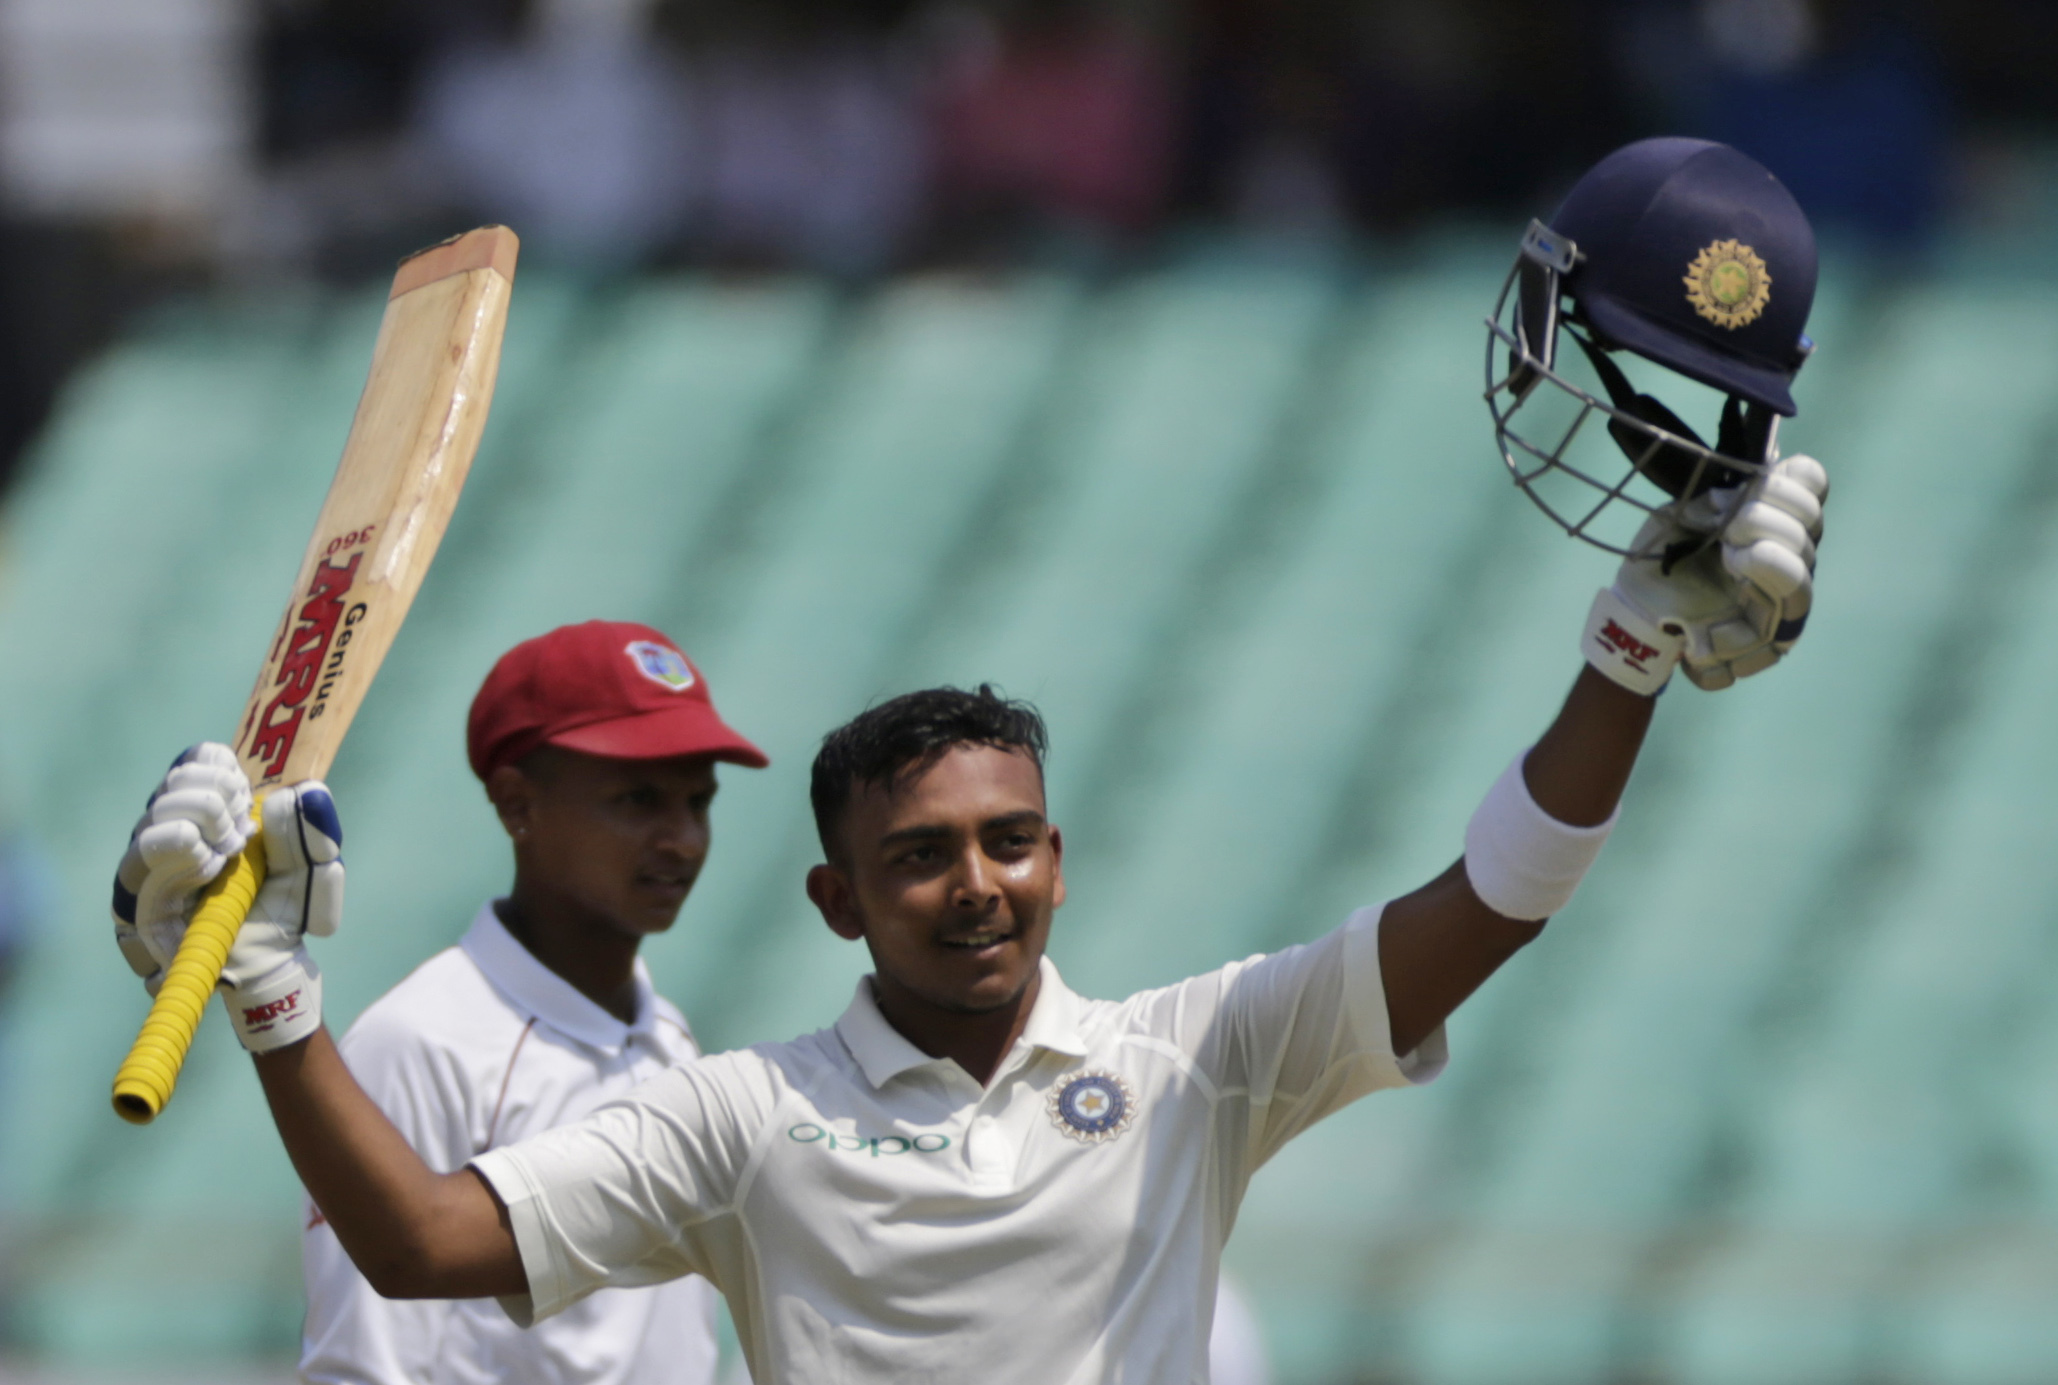 Indian cricketer Prithvi Shaw celebrates his century during the first day of the first cricket test match between India and West Indies in Rajkot - AP